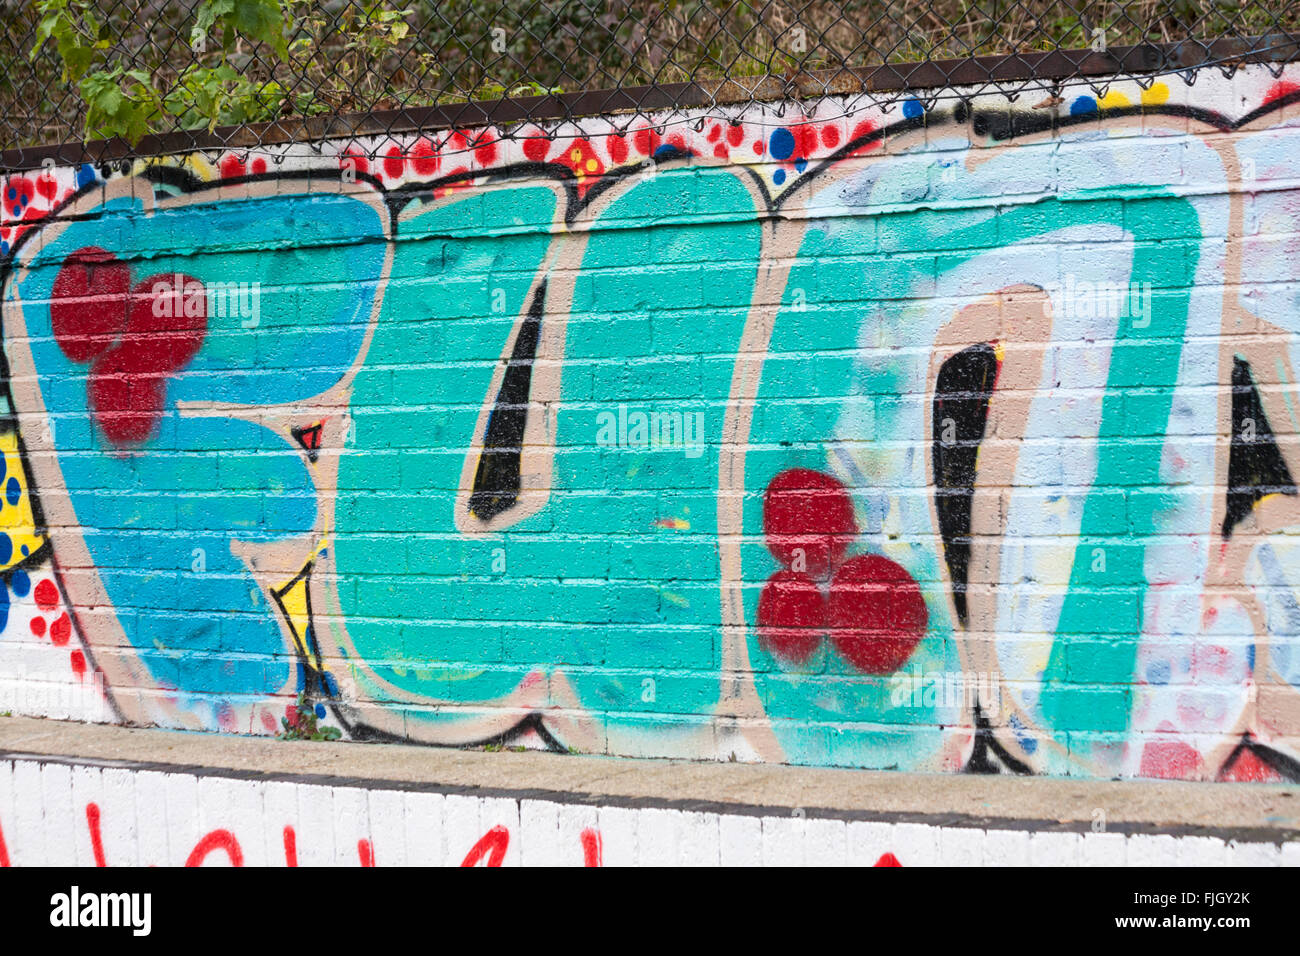 Fun - Graffiti on wall along Regents Canal towpath, London in February - Stock Image